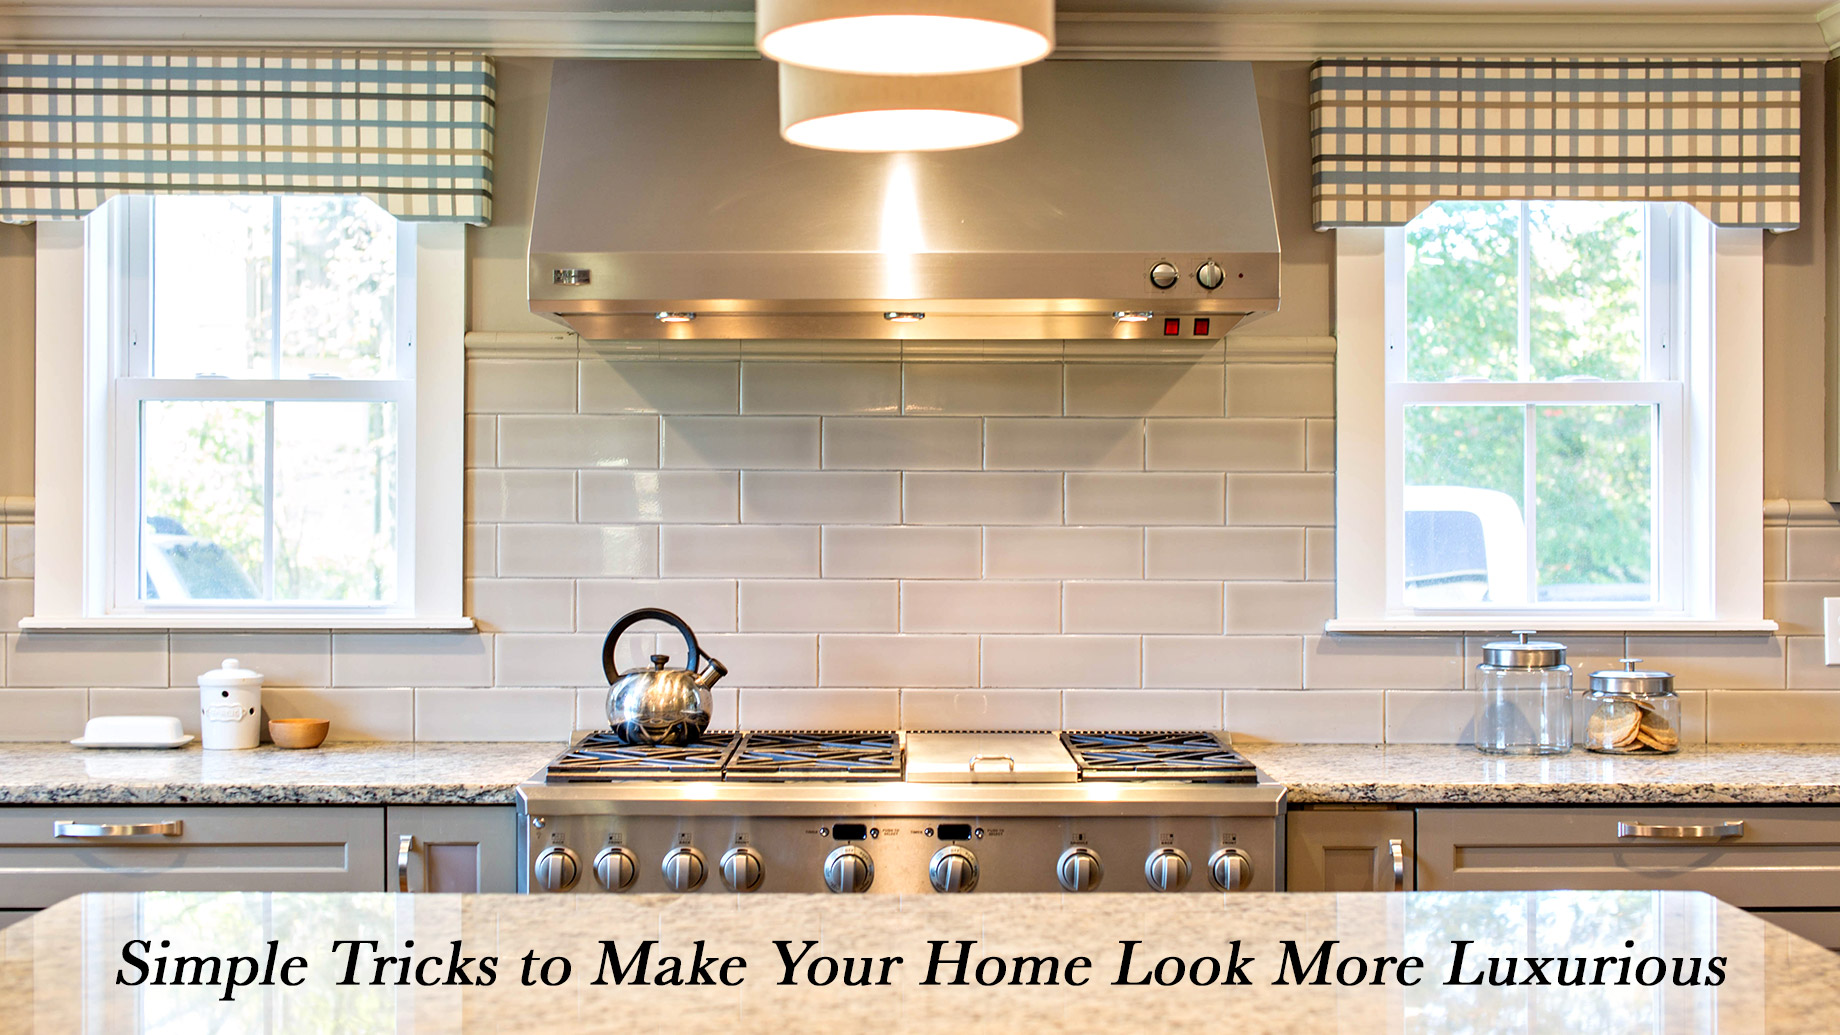 Simple Tricks to Make Your Home Look More Luxurious